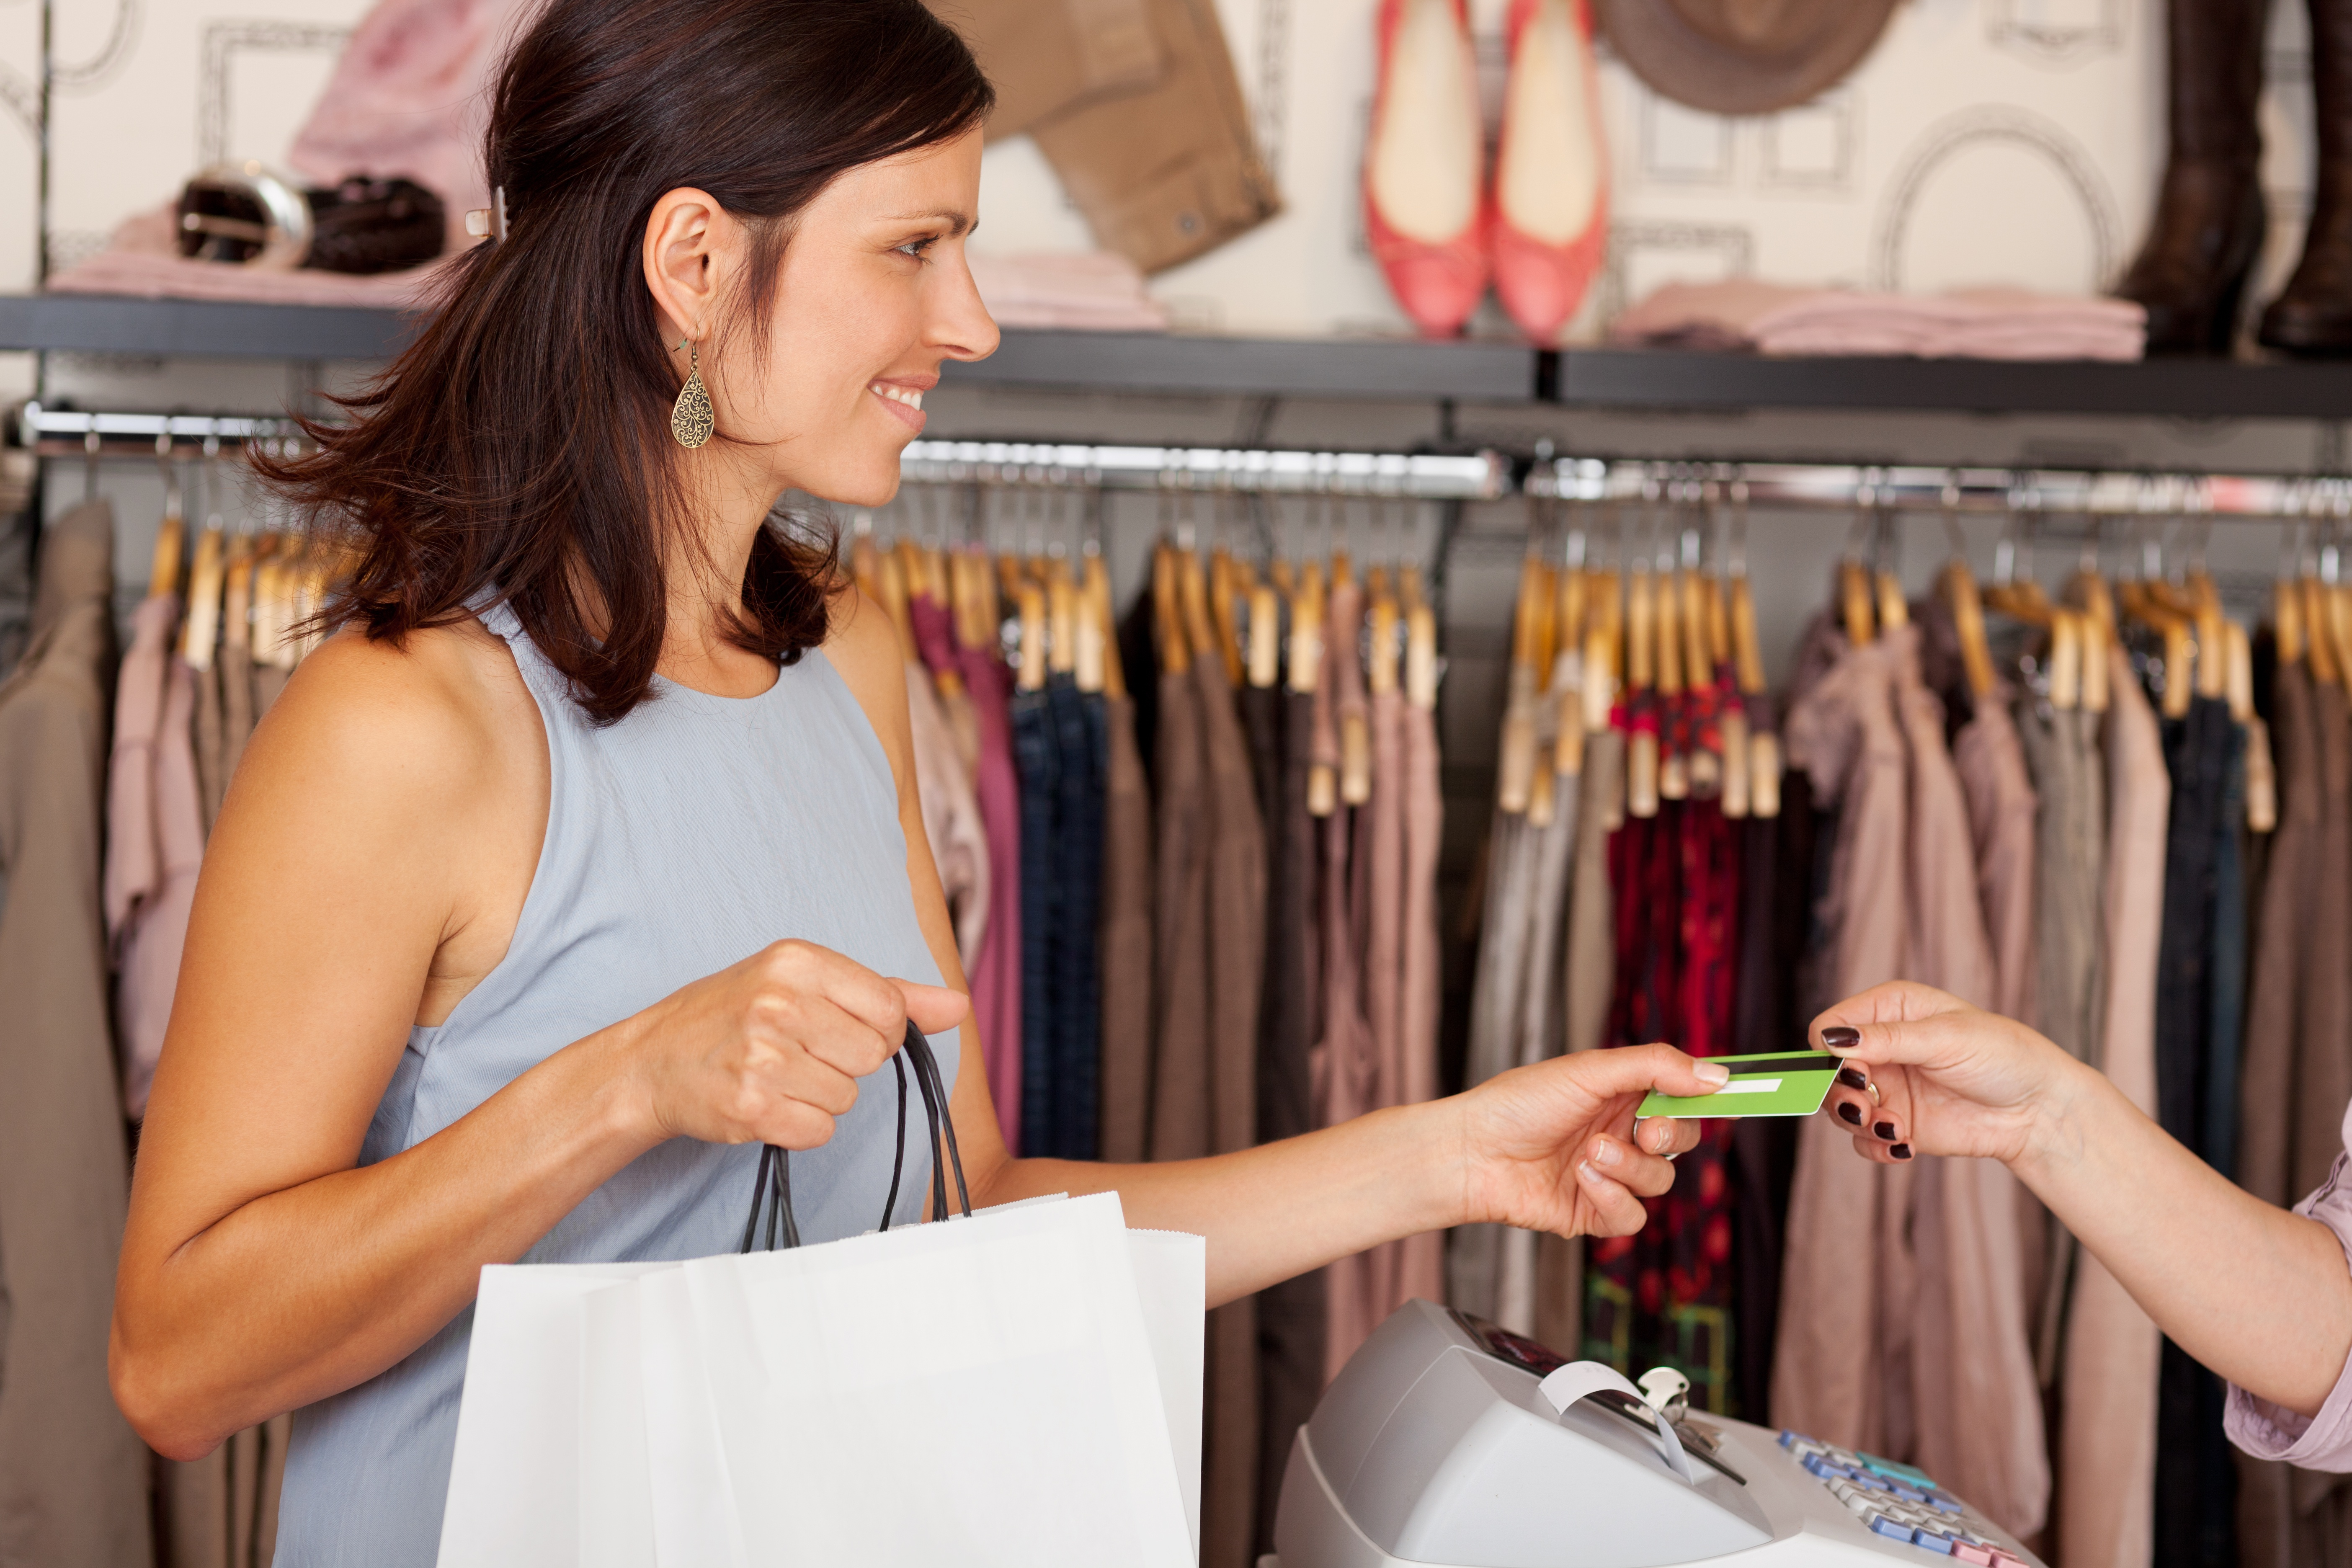 Addressing Women's Payment Preferences